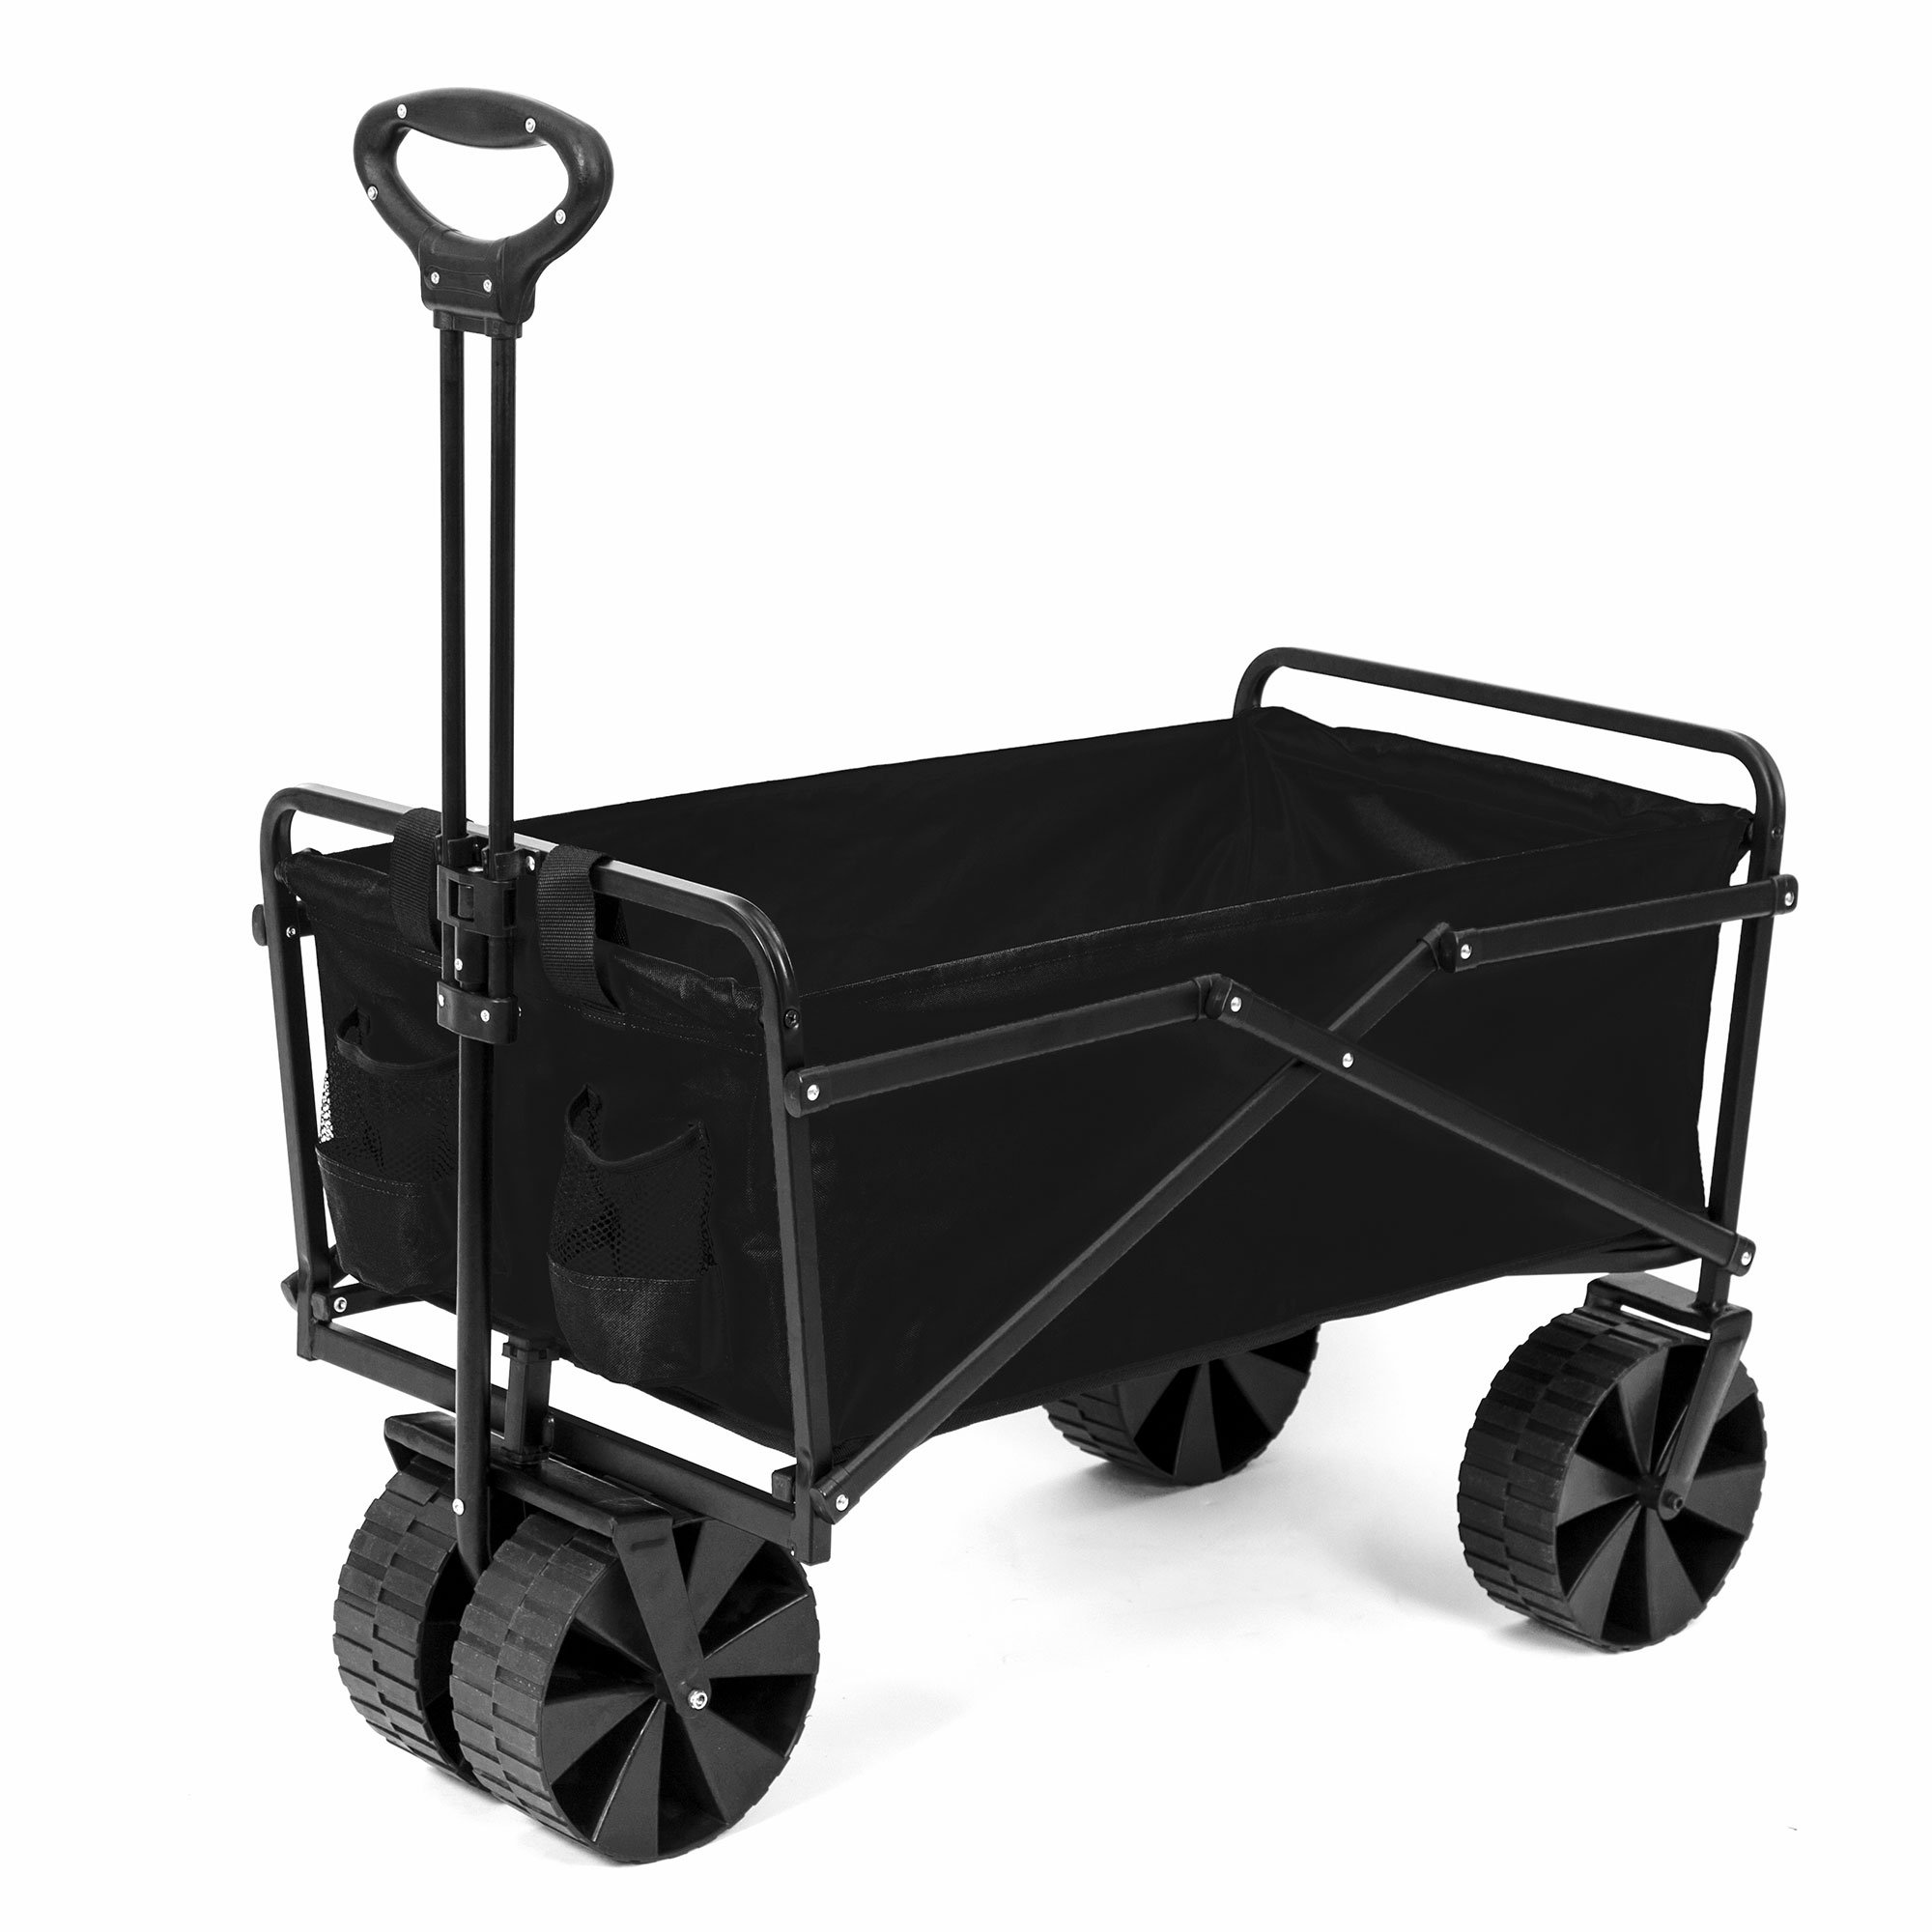 Seina Collapsible Utility Beach Wagon and Cart, Black